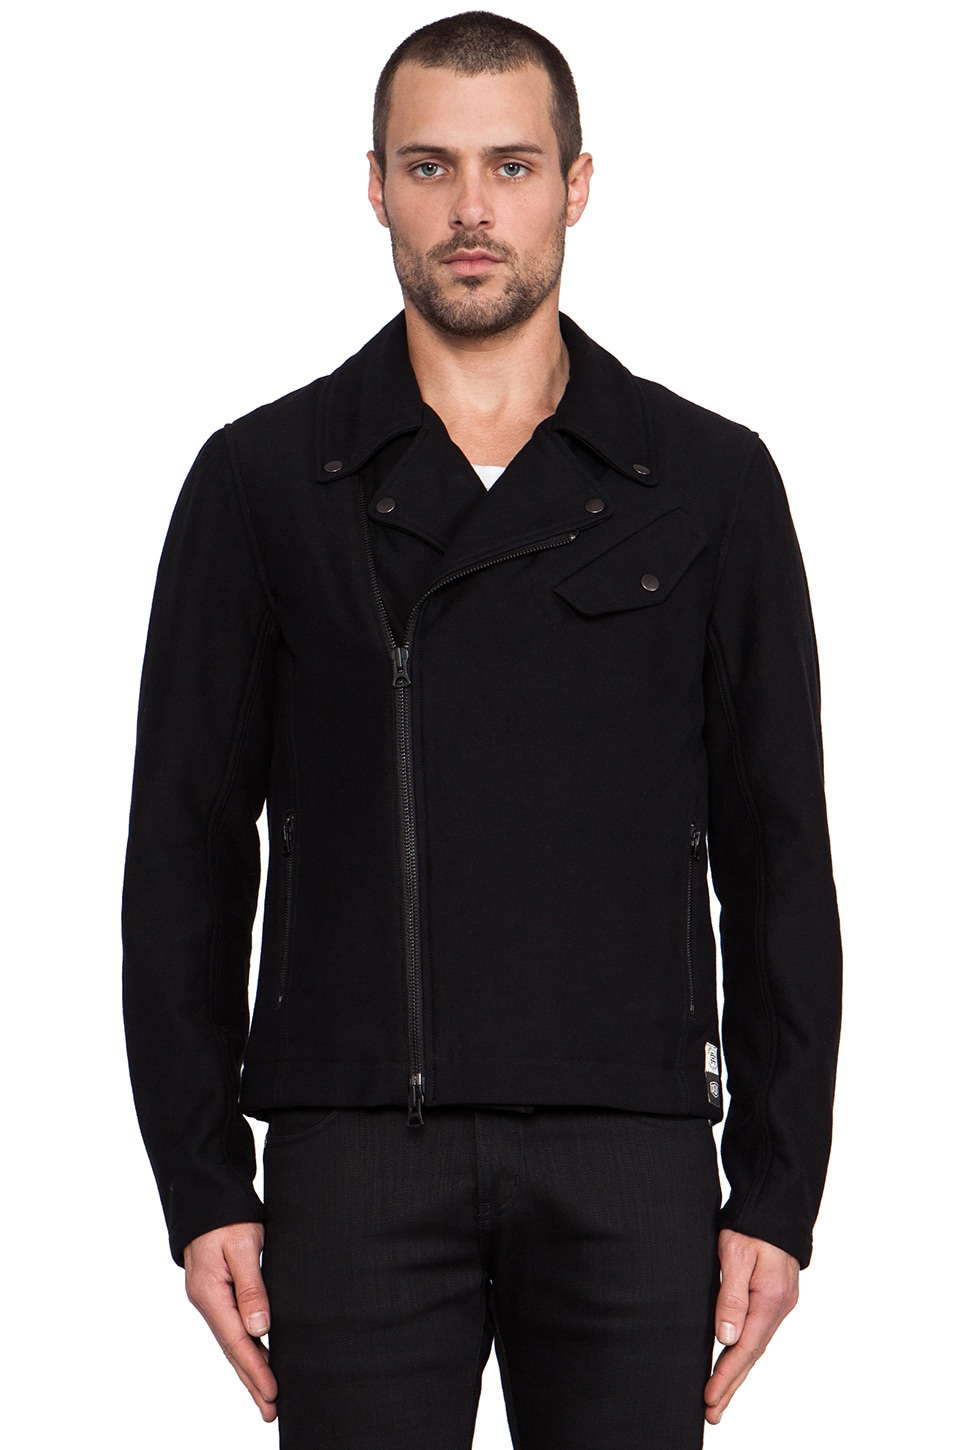 Deus Ex Machina x Reigning Champ Rider Jacket in Black